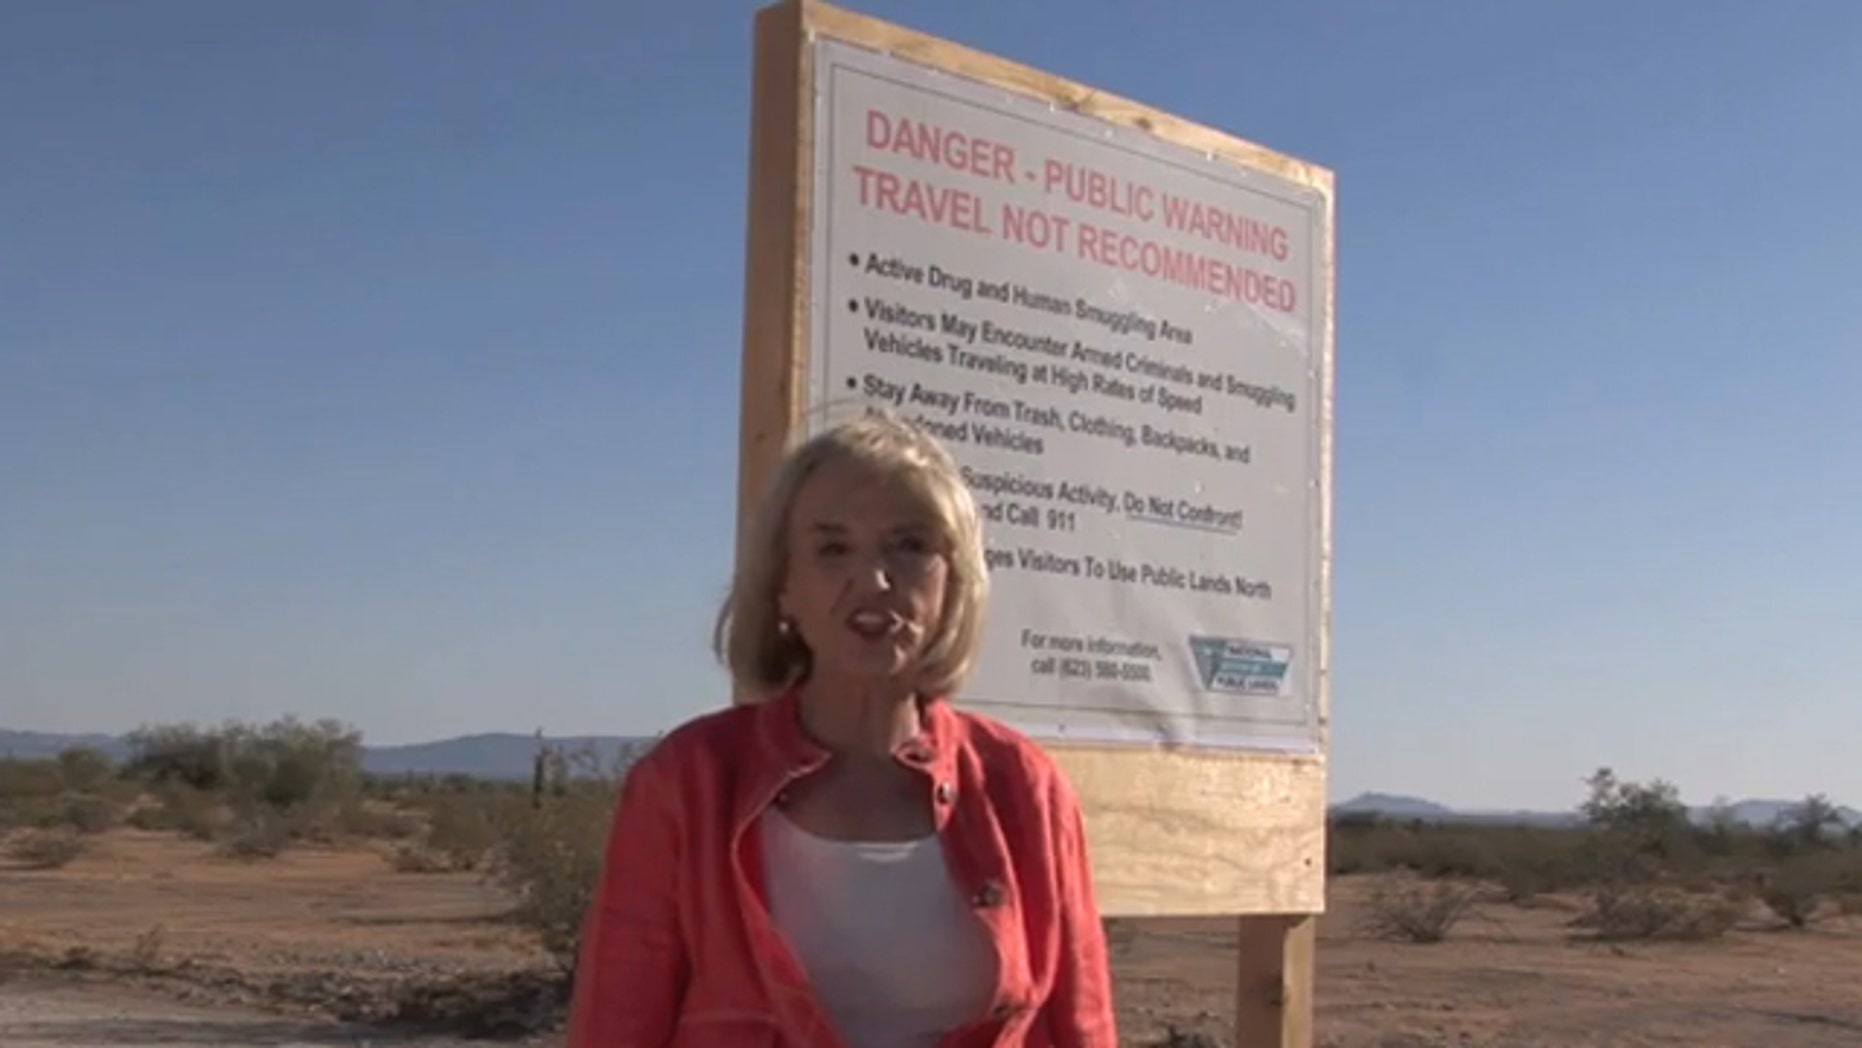 Arizona Gov. Jan Brewer is shown next to a warning sign in the desert in a campaign ad. (Governor Jan Brewer 2010)